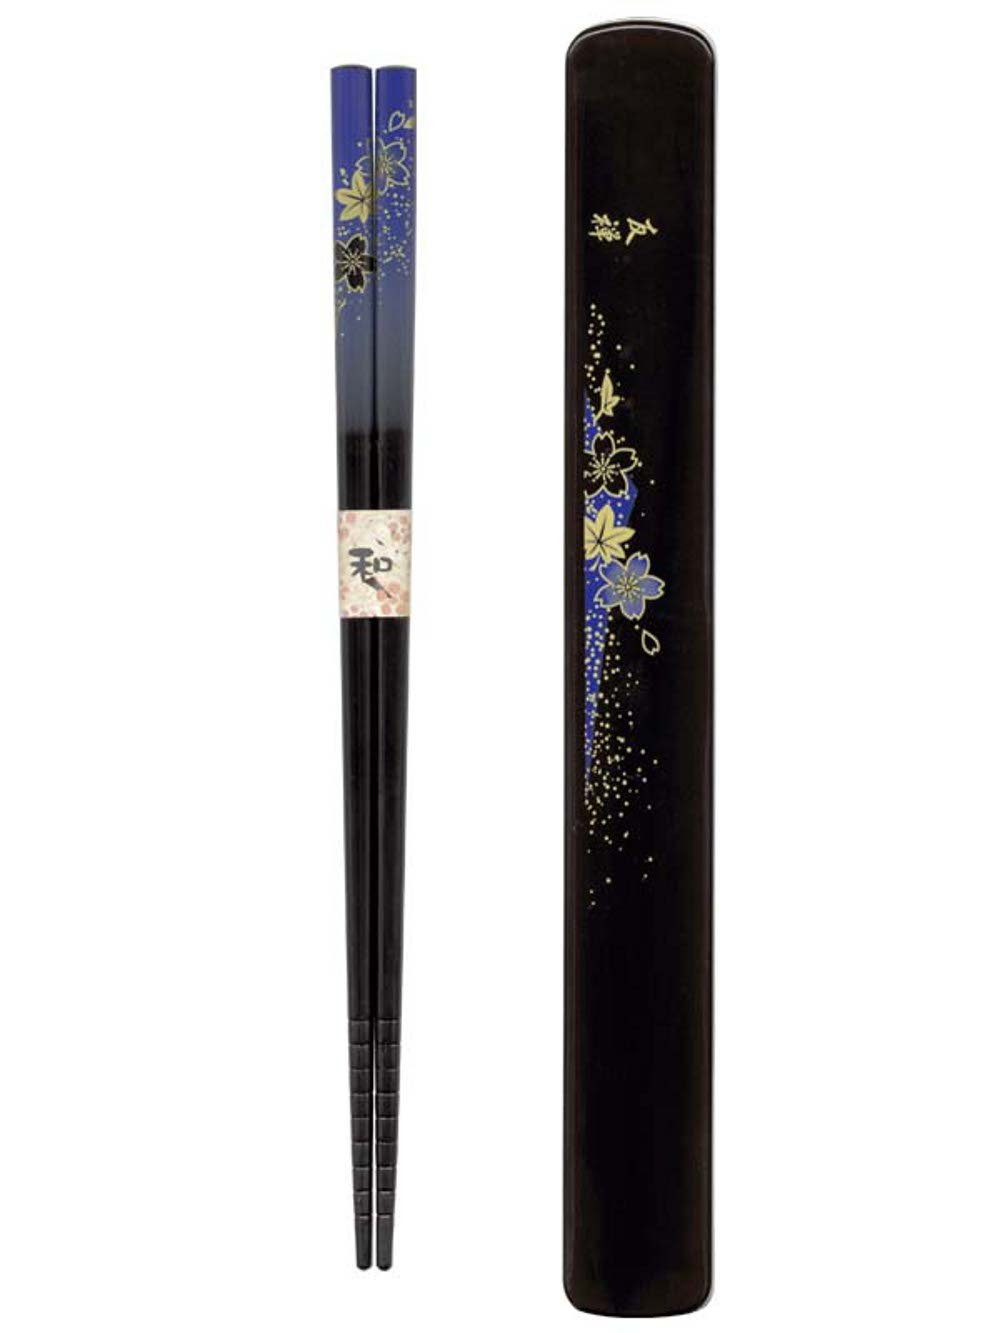 Tanaka Hashiten Box, Hanayuzen, Dark Blue Design 22.5cm Long Chopsticks, Hardwood 4974835090009